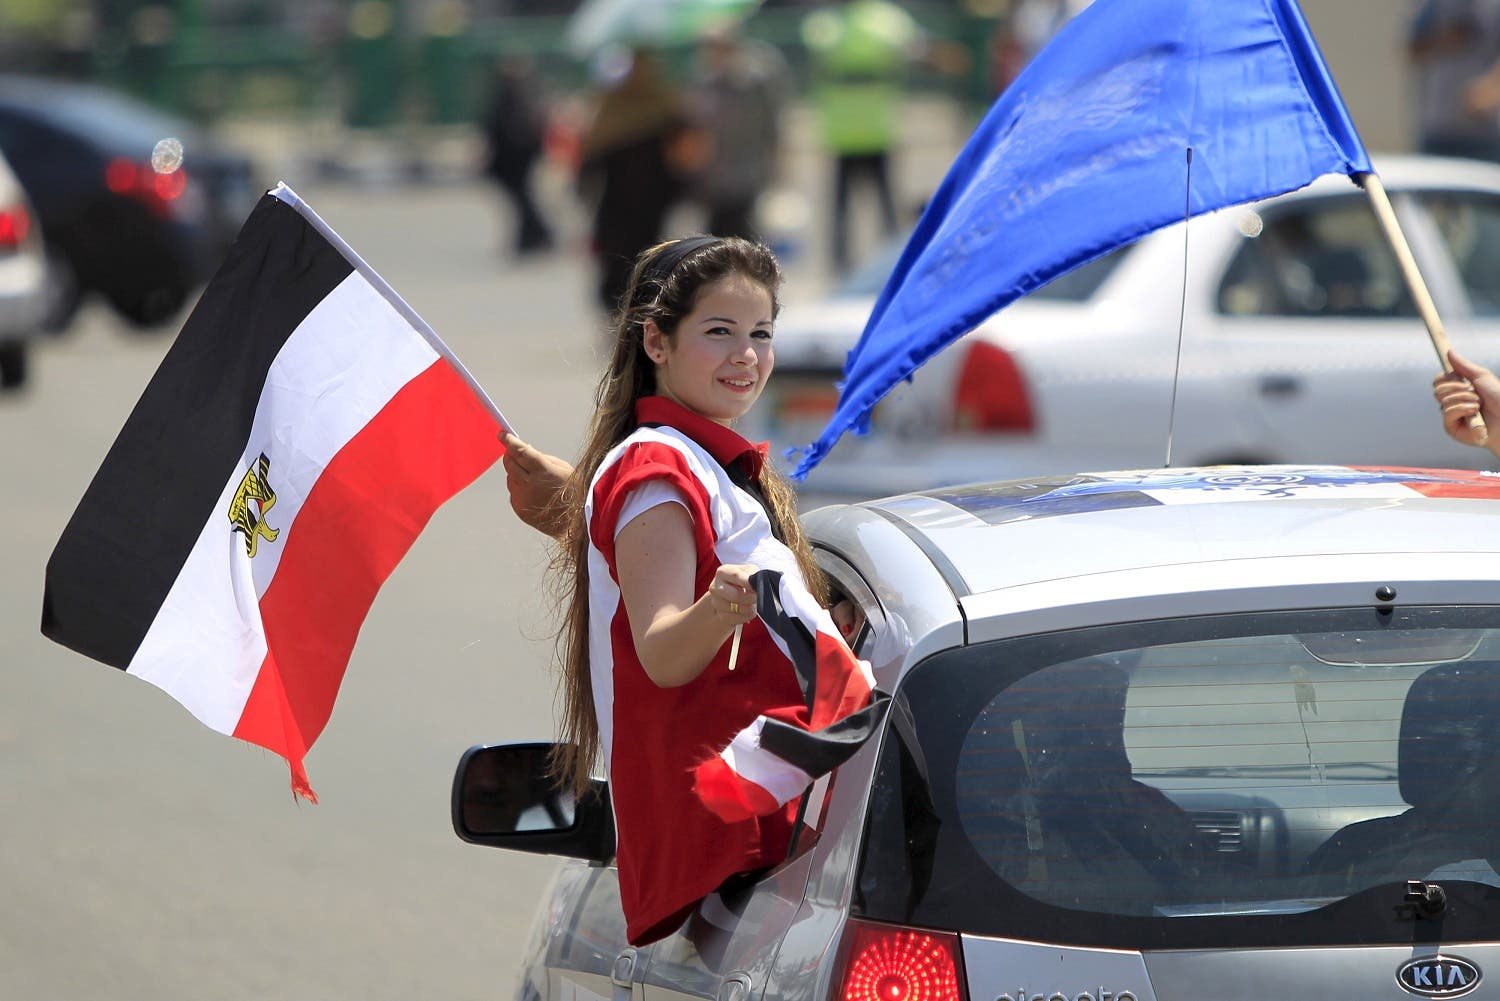 A girl carries a national flag while riding in a car as people gather in Tahrir square to celebrate an extension of the Suez Canal, in Cairo, Egypt, August 6, 2015. (Reuters)